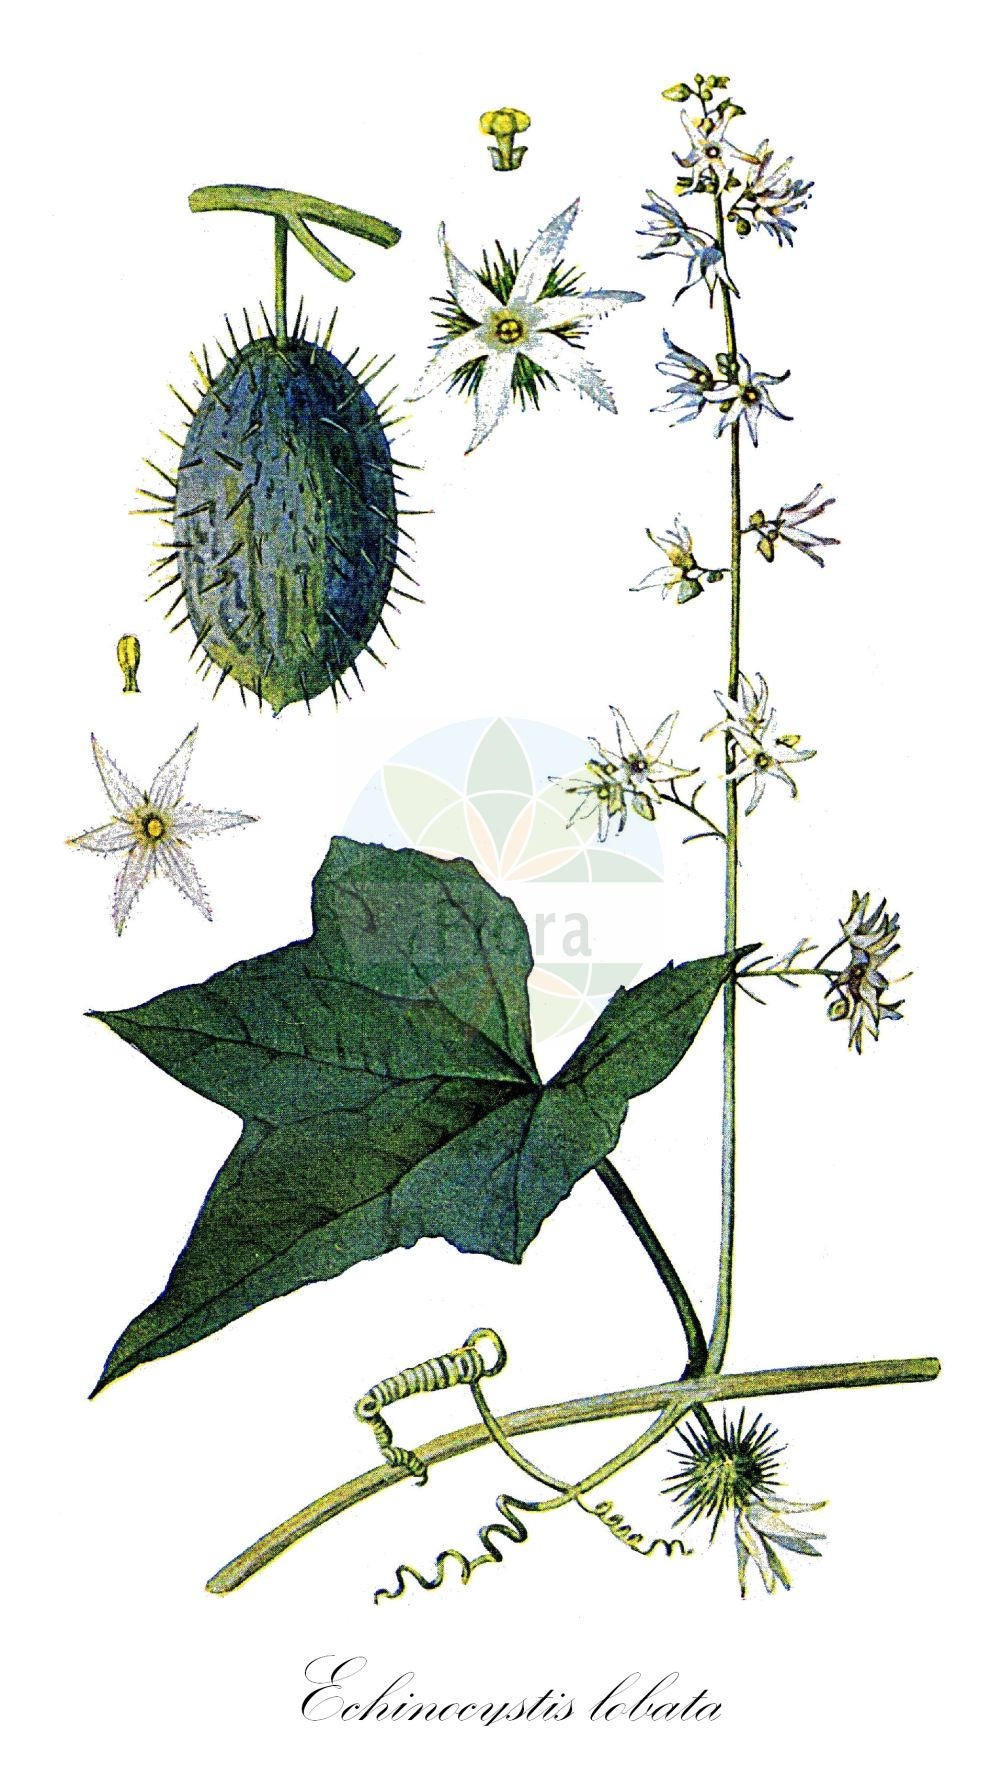 Historische Abbildung von Echinocystis lobata (Stachelgurke - Wild Cucumber). Das Bild zeigt Blatt, Bluete, Frucht und Same. ---- Historical Drawing of Echinocystis lobata (Stachelgurke - Wild Cucumber).The image is showing leaf, flower, fruit and seed.(Echinocystis lobata,Stachelgurke,Wild Cucumber,Echinocystis echinata,Sicyos lobatus,Gelappte Igelgurke,Wild Balsam Apple,Echinocystis,Stachelgurke,Wild Cucumber,Cucurbitaceae,Kuerbisgewaechse,Cucurbit family,Blatt,Bluete,Frucht,Same,leaf,flower,fruit,seed,Eaton (1916))